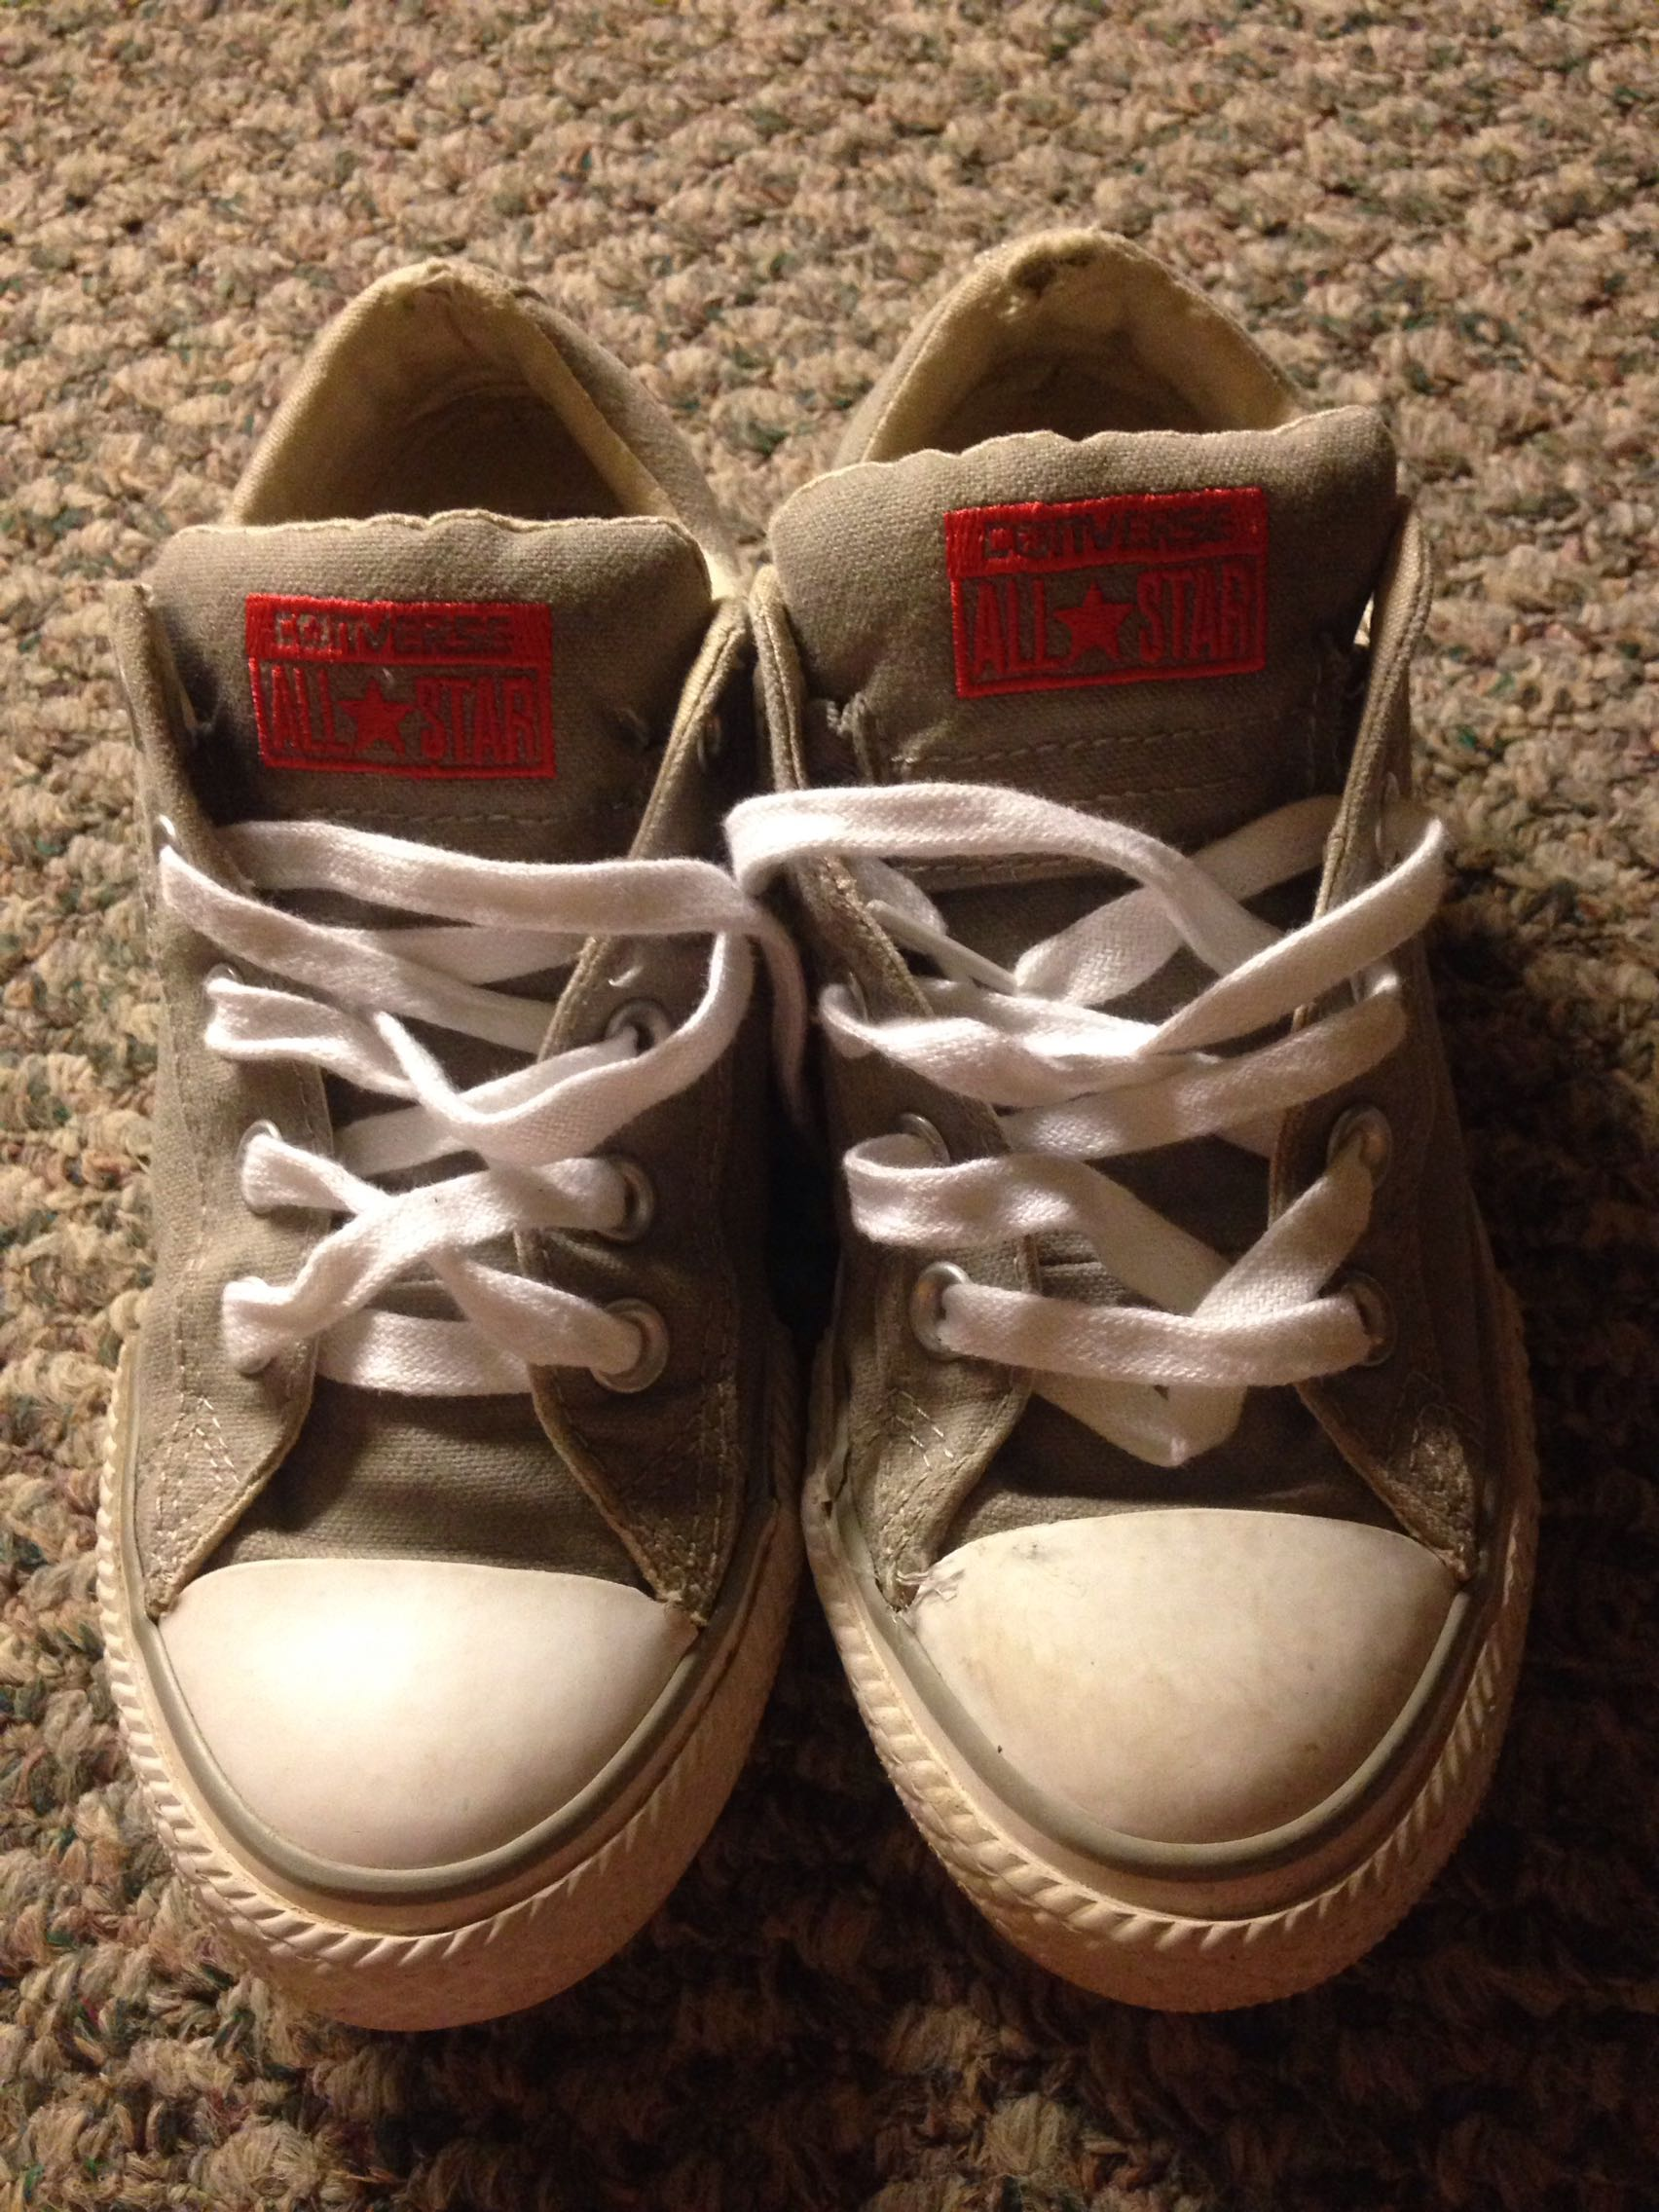 Youth size 1 converse shoes